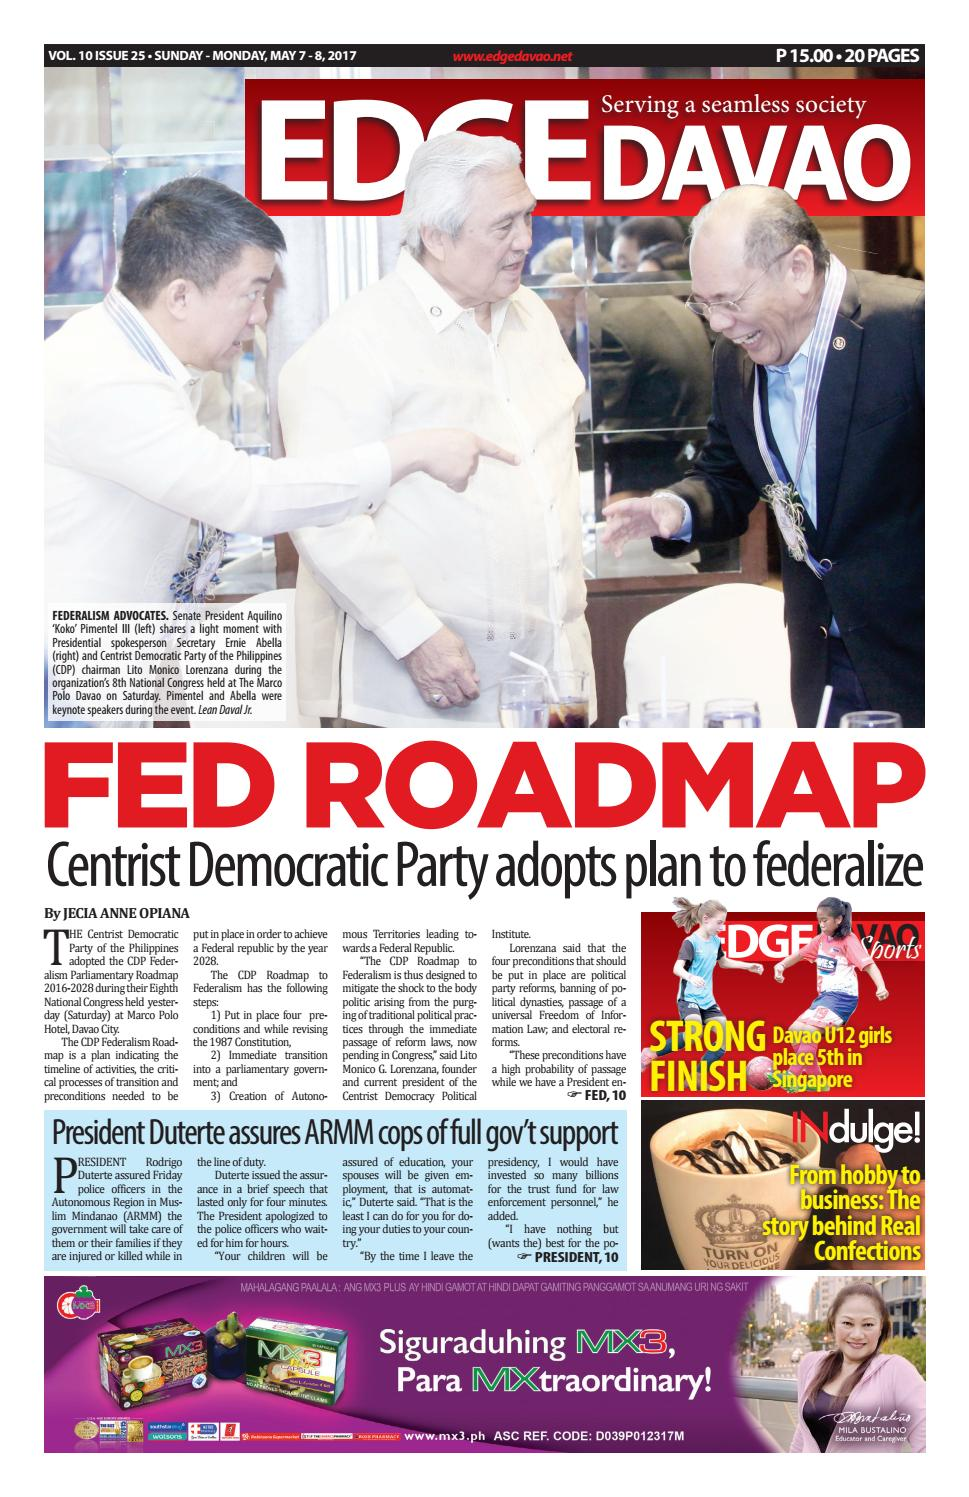 Edge Davao 10 Issue 25 By The Business Paper Issuu Bosing Bulat